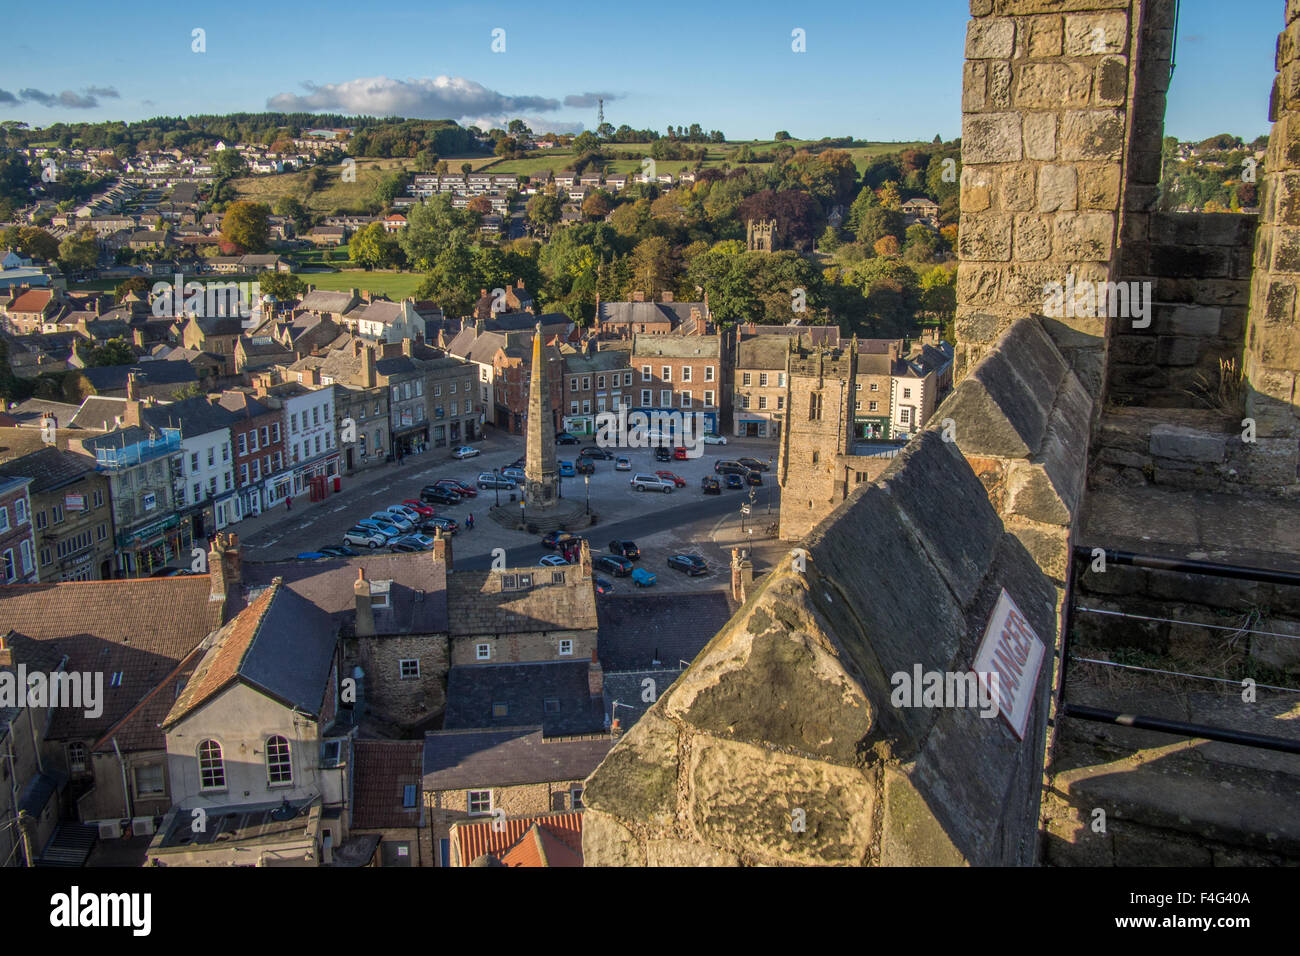 Richmond town centre as seen from the castle, Richmondshire, North Yorkshire, England. - Stock Image